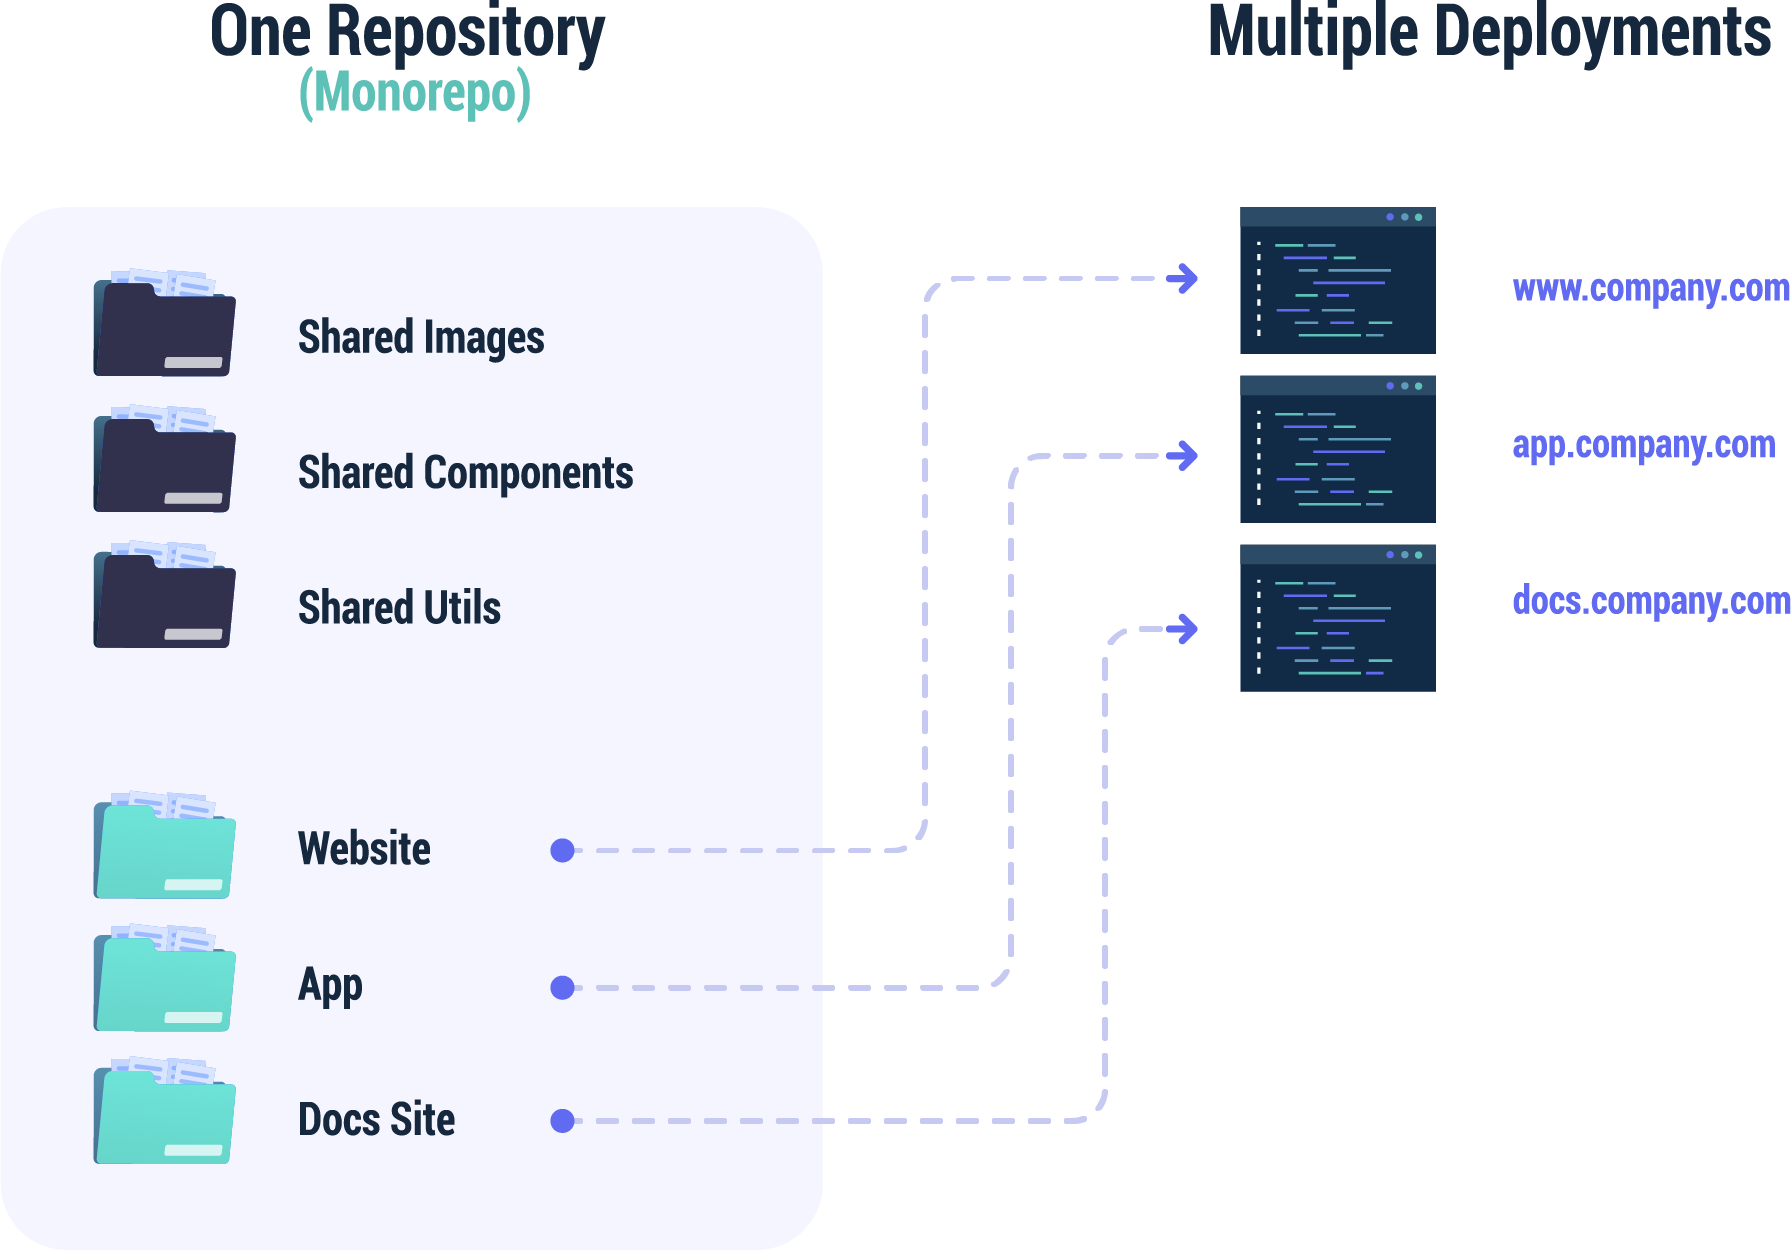 Diagram shows how one monorepo can be used to deploy multiple websites or apps